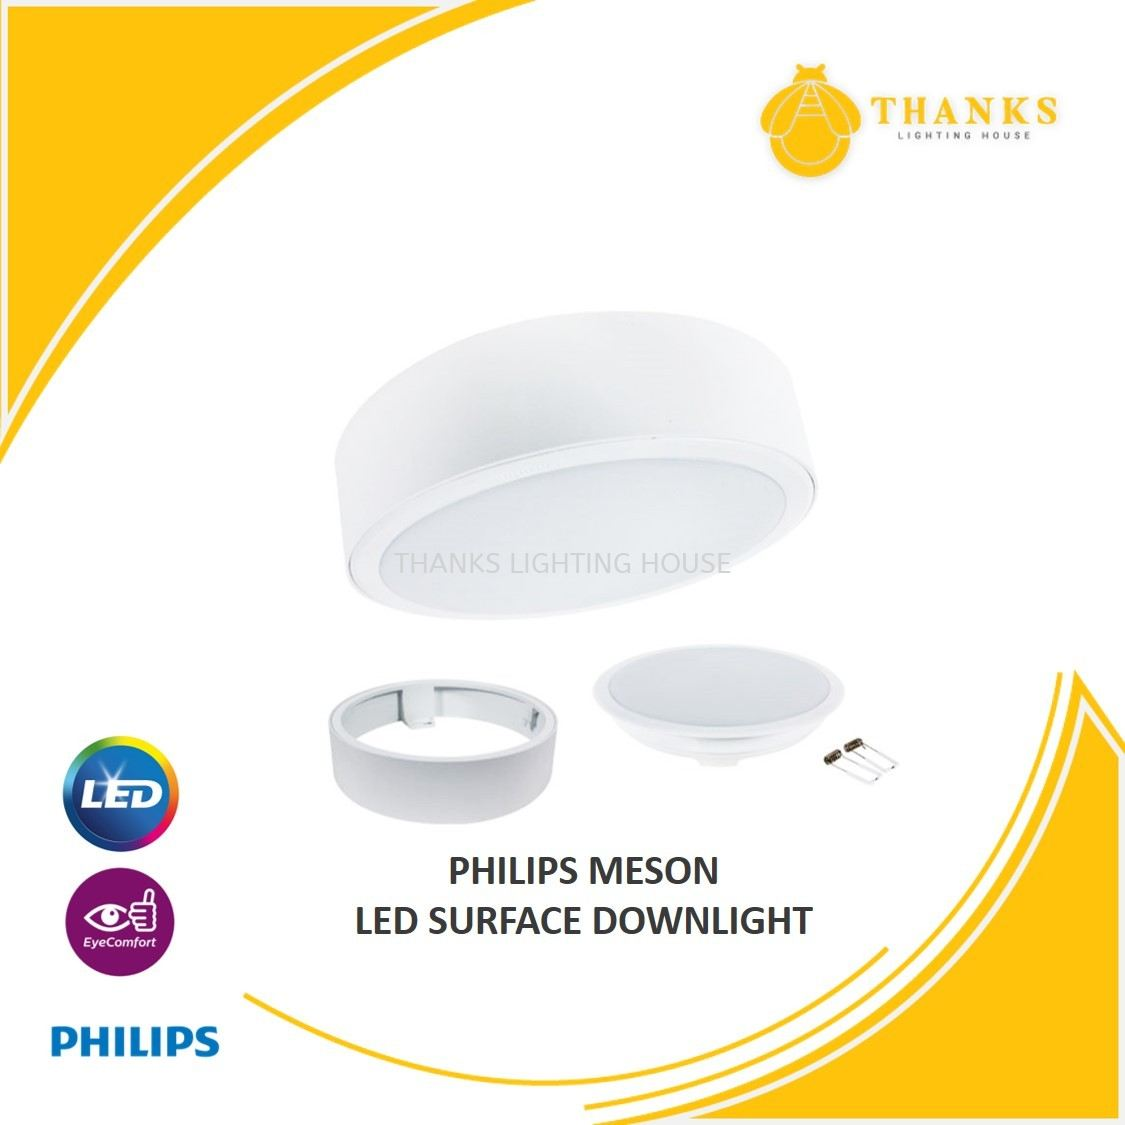 PHILIPS MESON LED SURFACE DOWNLIGHT 17W 24W